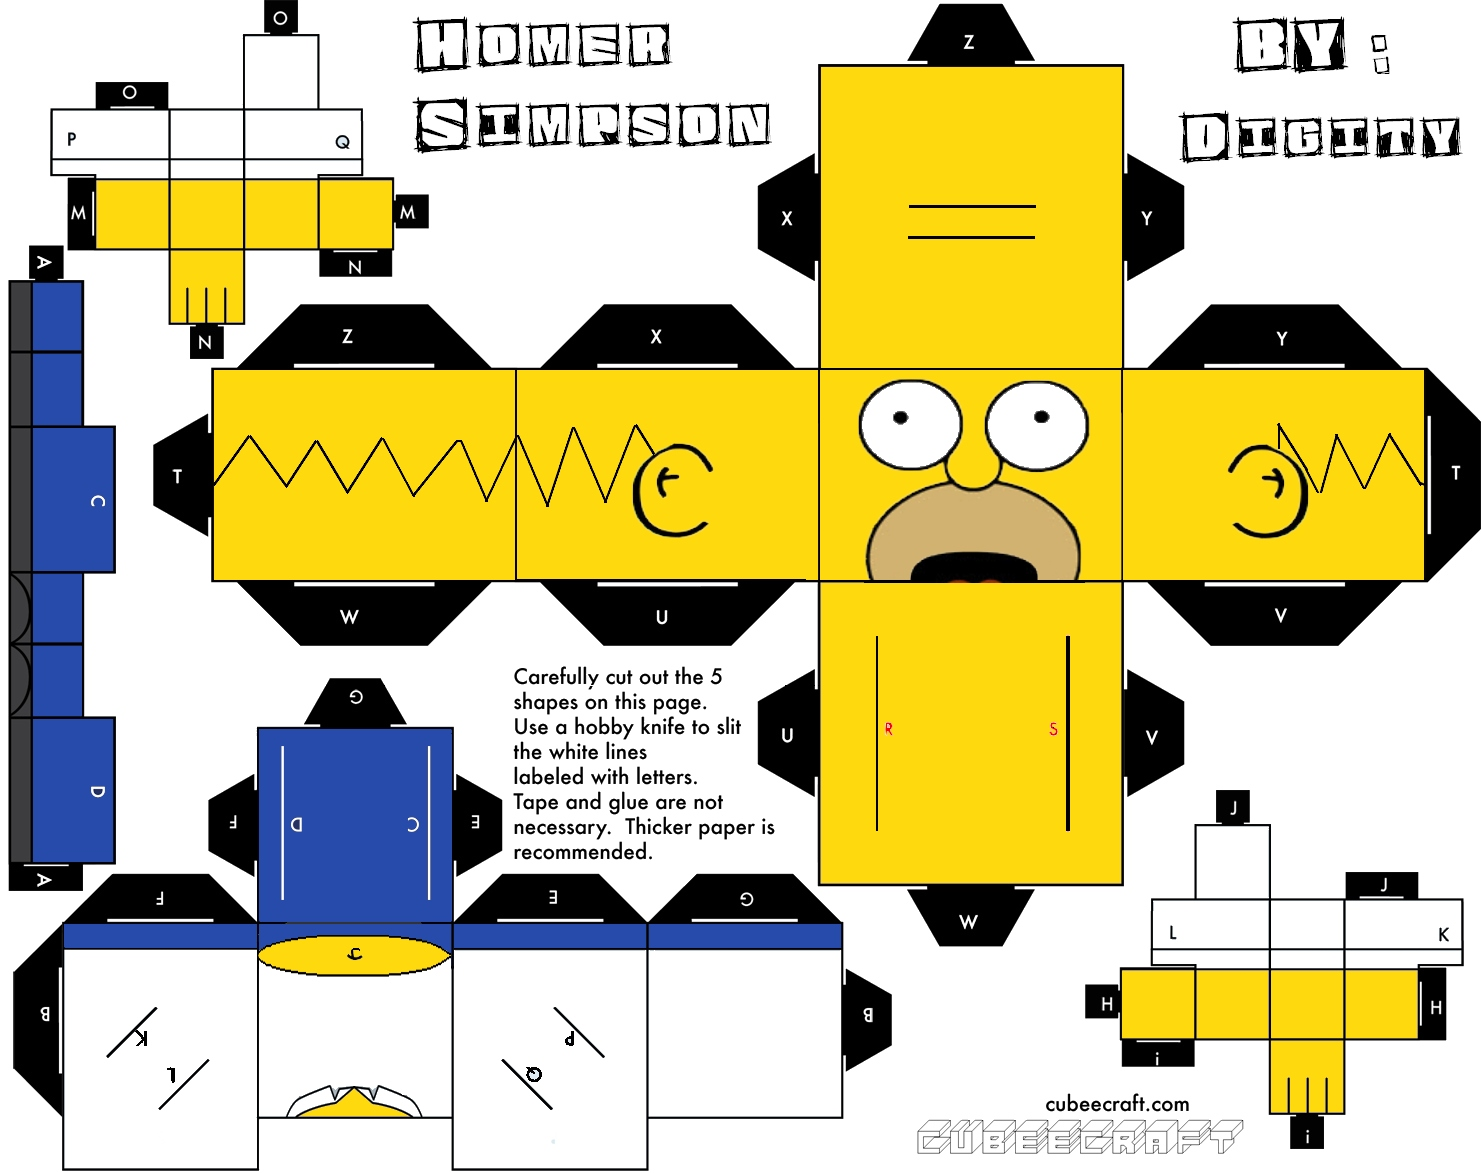 paper_craft_homer_simpson_by_digity.jpg